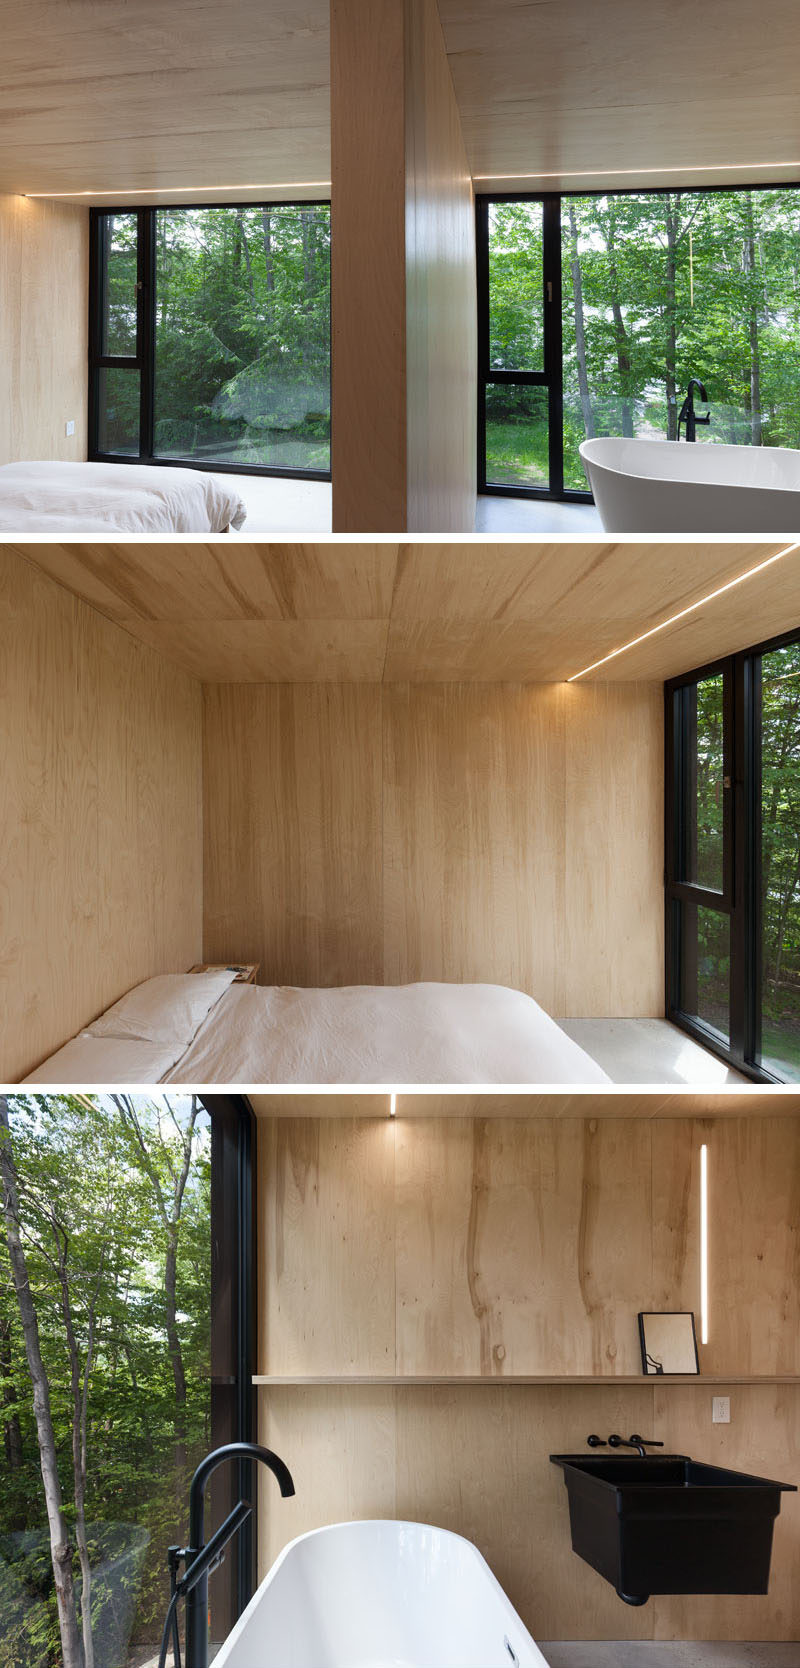 This master bedroom and bathroom both have large windows that let plenty of natural light in, and frame the surrounding forest.